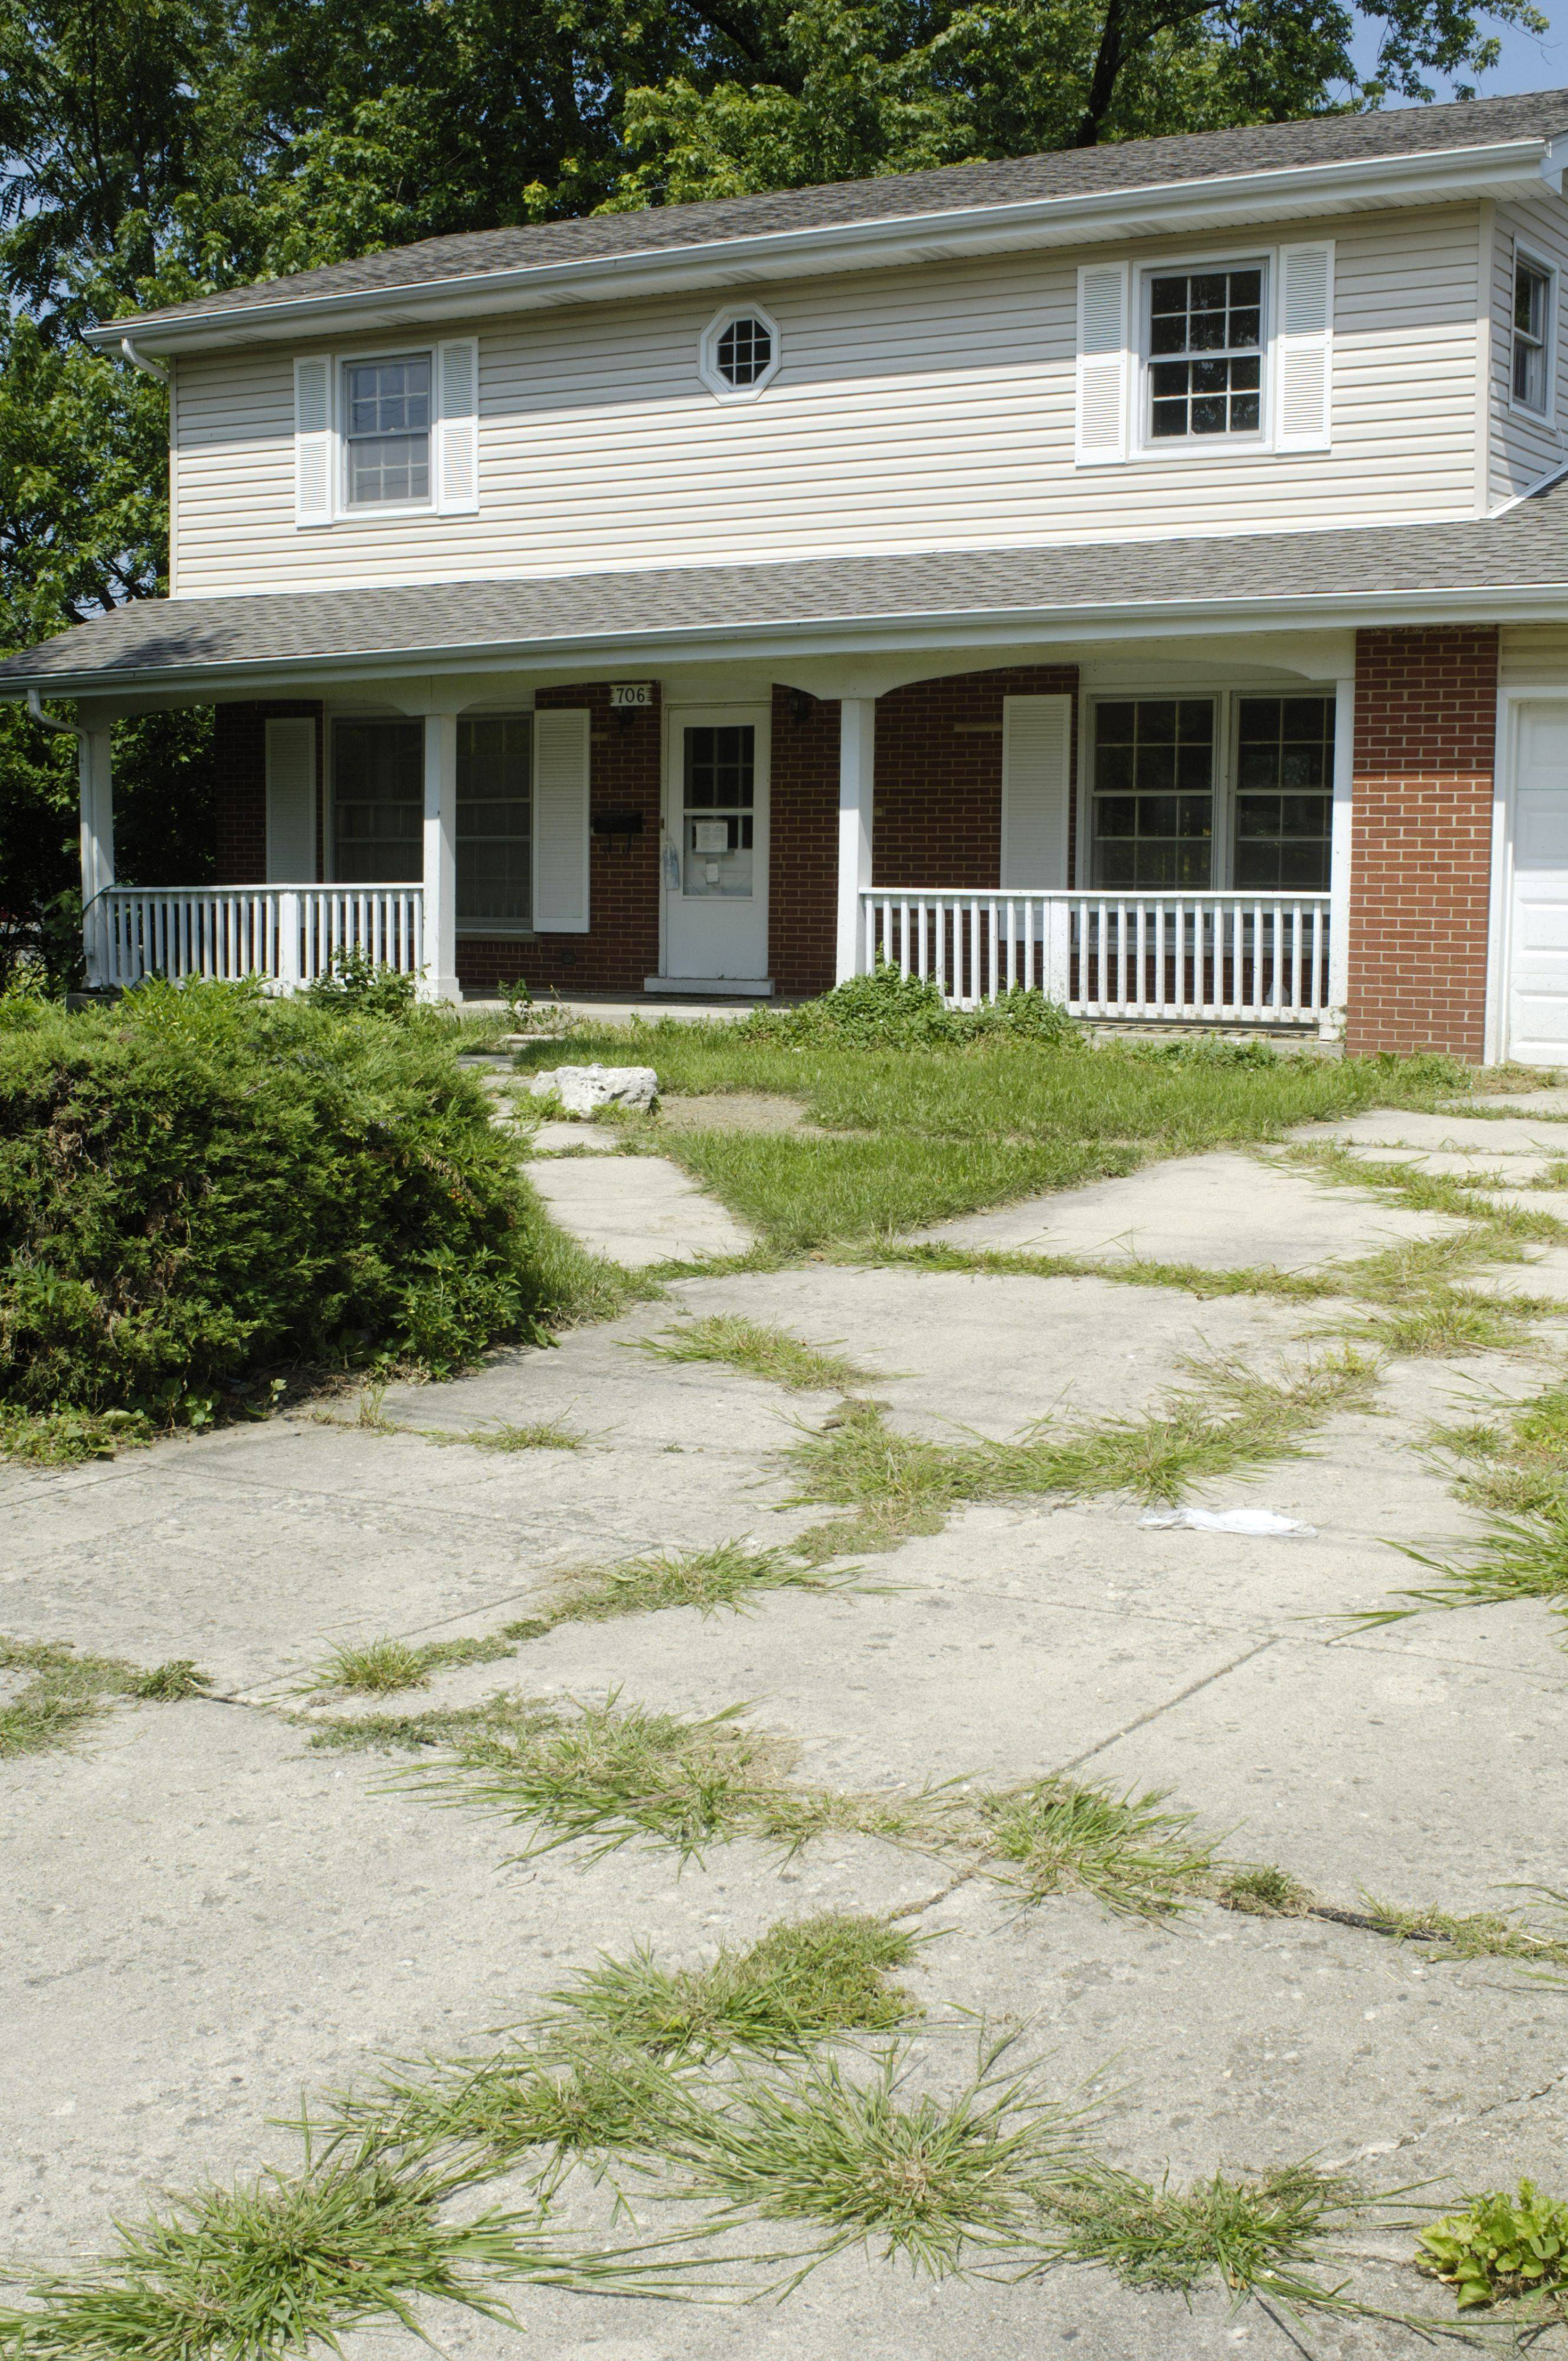 While Palatine has a program to keep up vacant homes, intervening to mow when necessary, this vacant house in the 700 block of East Baldwin Road still shows the signs of neglect that can come with unoccupied properties.